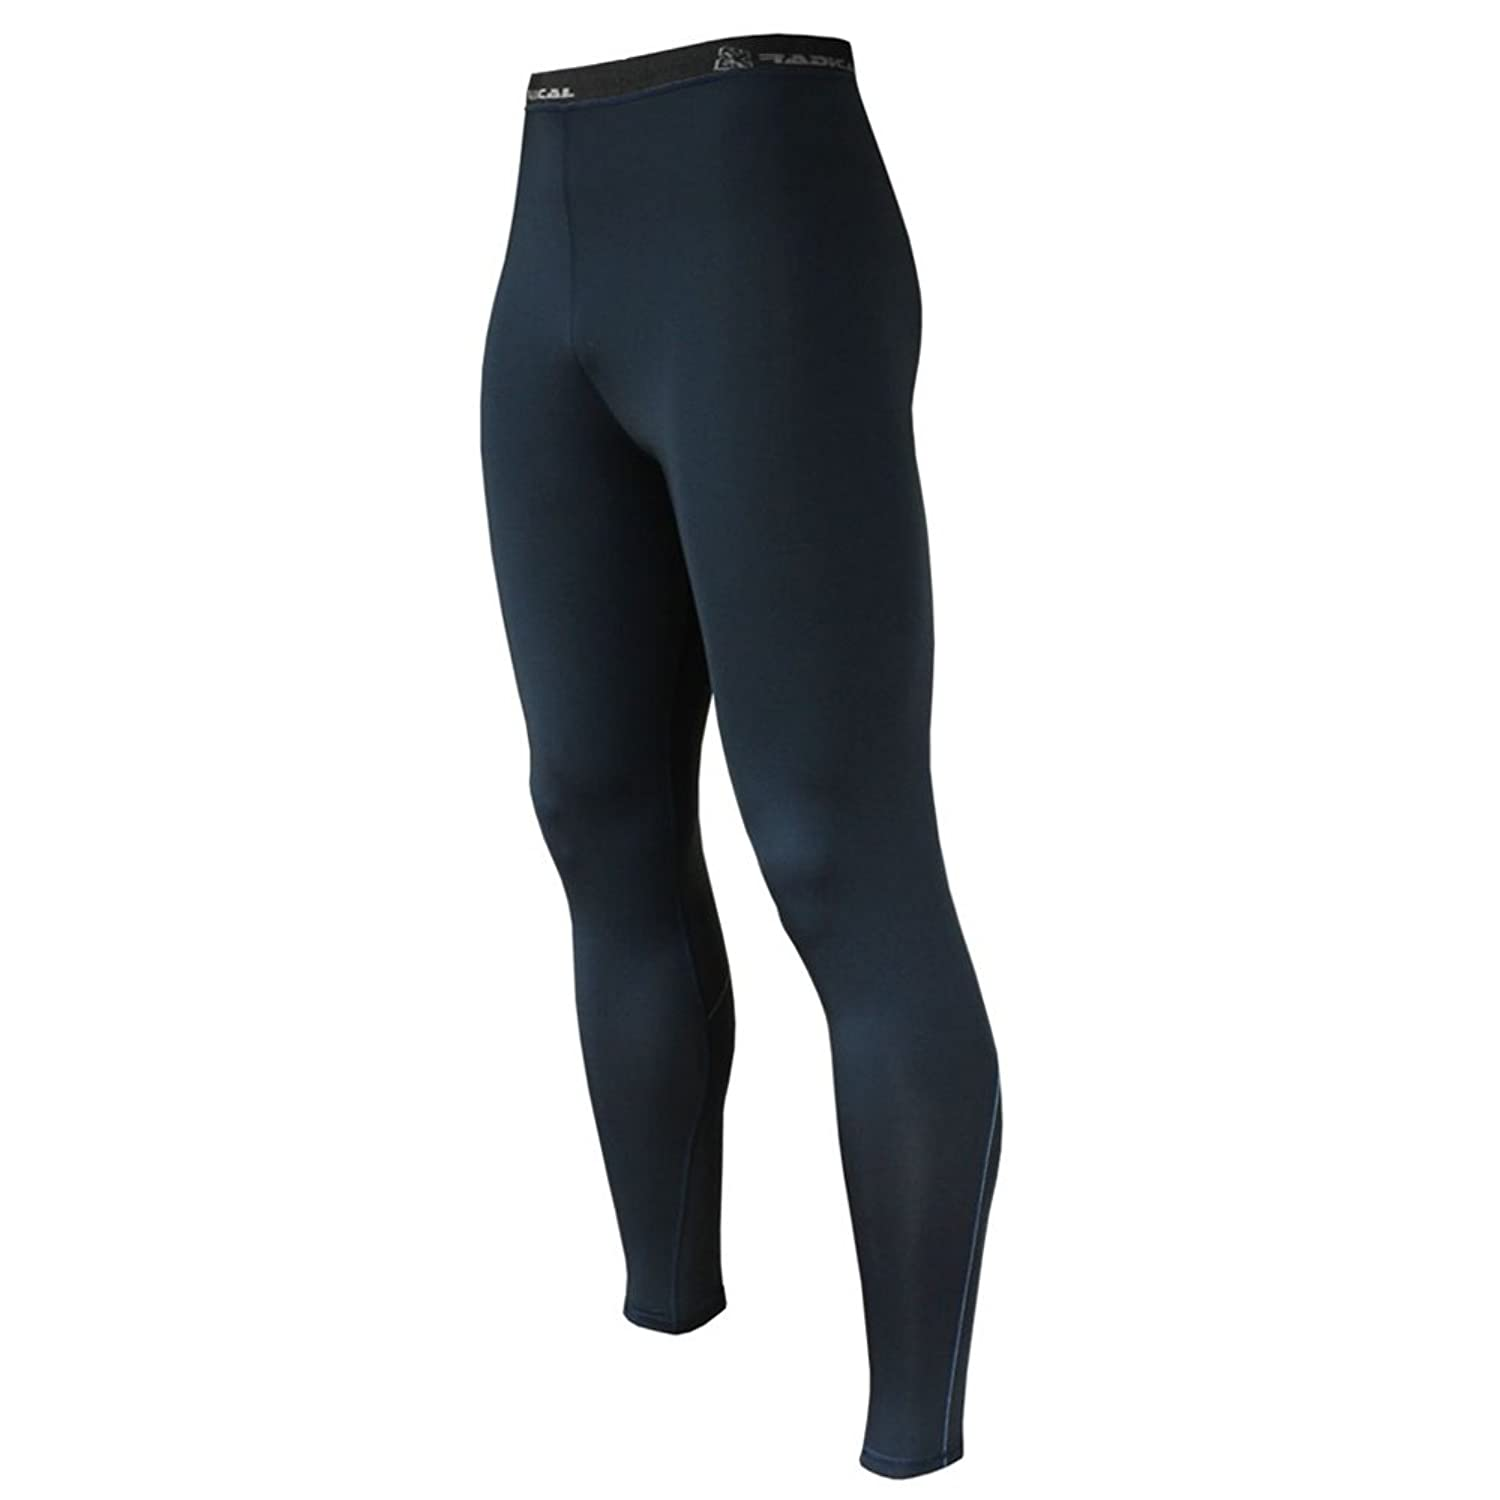 ROUGH RADICAL leichte Funktions Laufhose lang Running Tights Radhose NEXUS